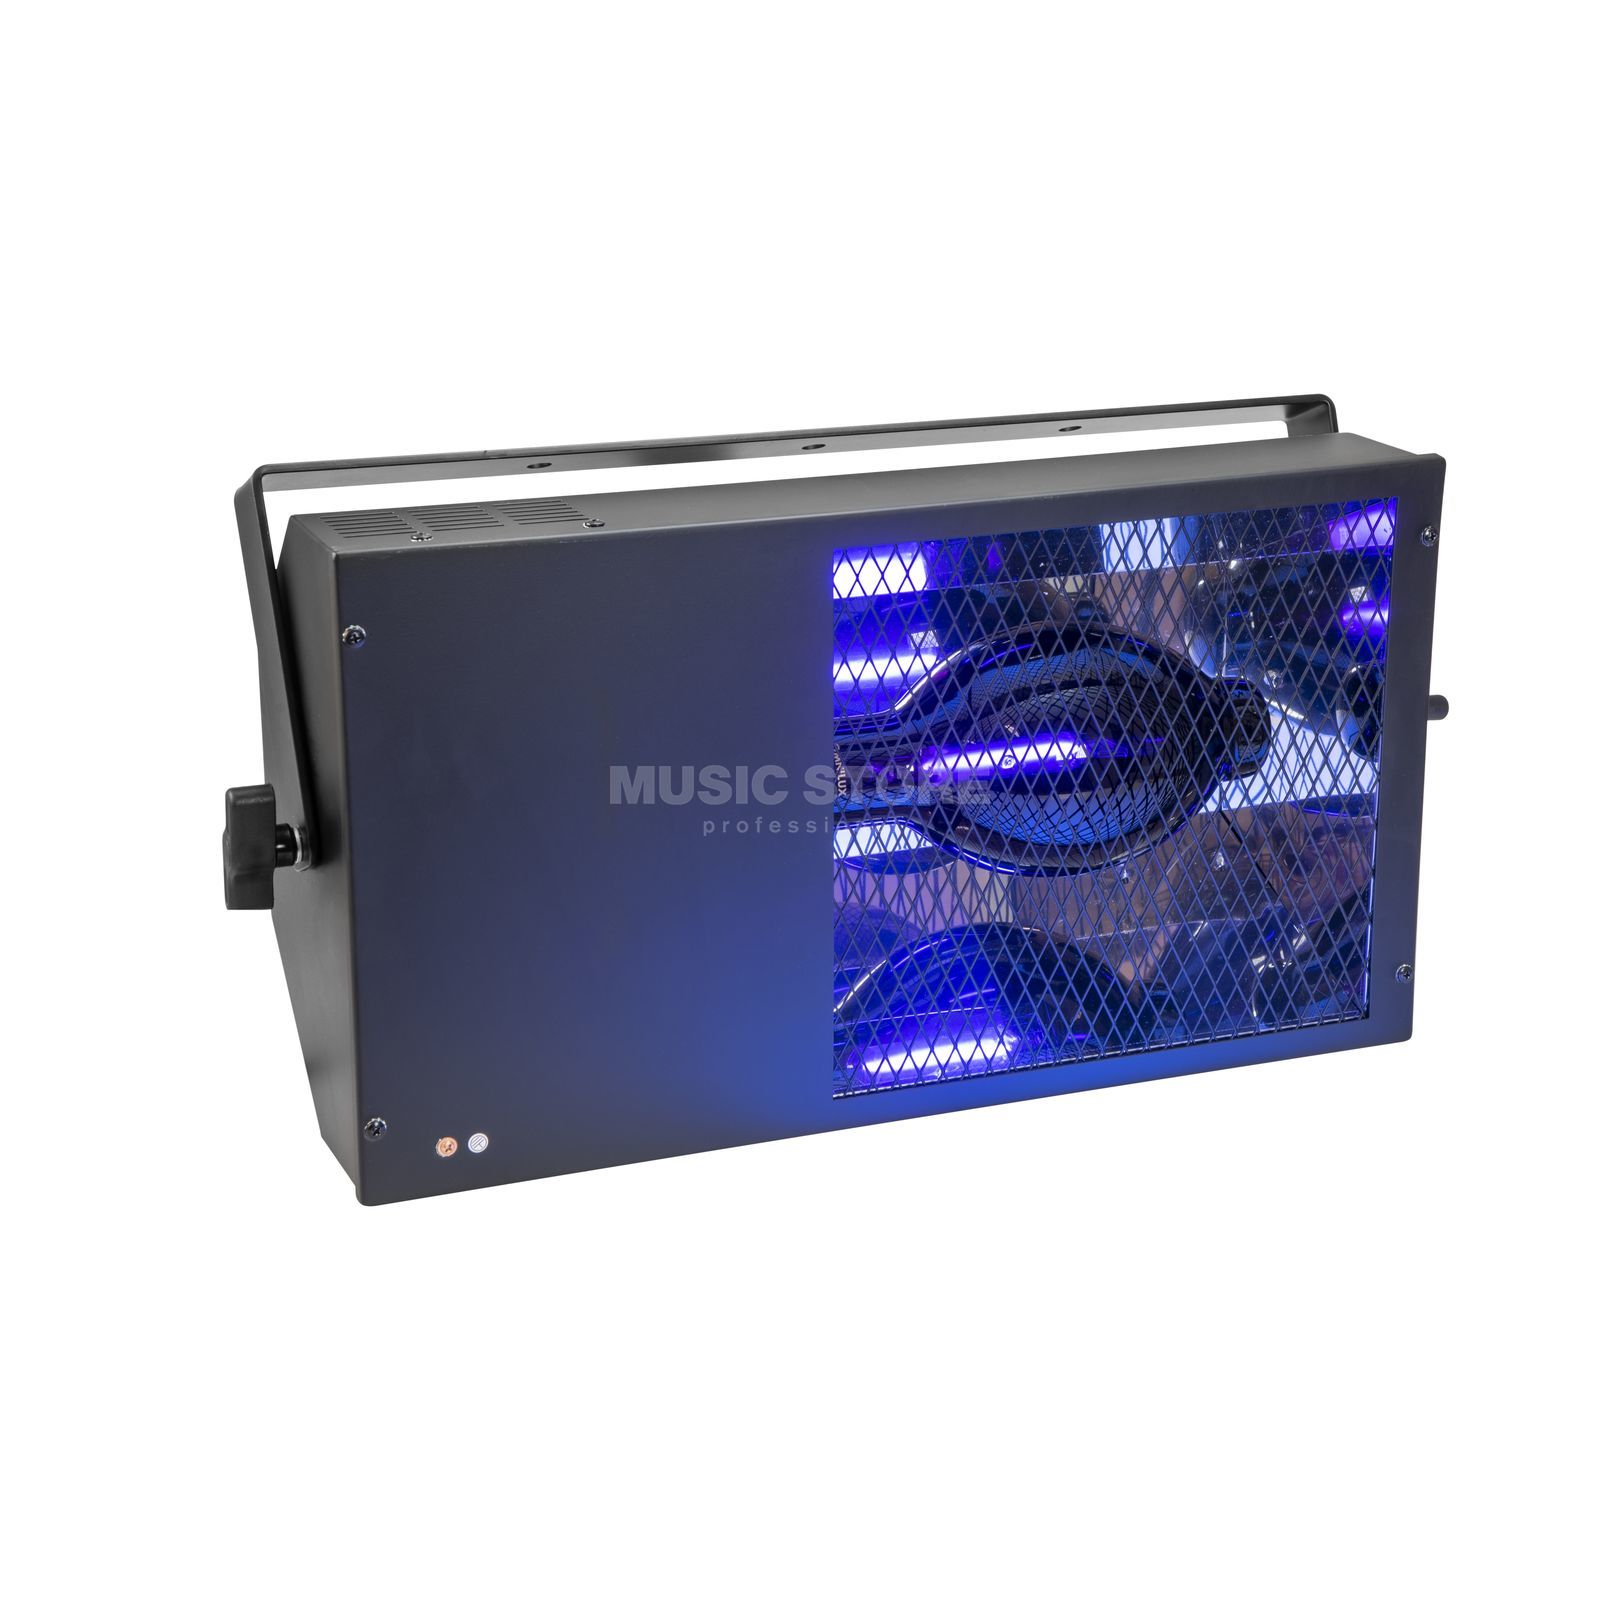 Eurolite Black Floodlight 400W  Produktbillede